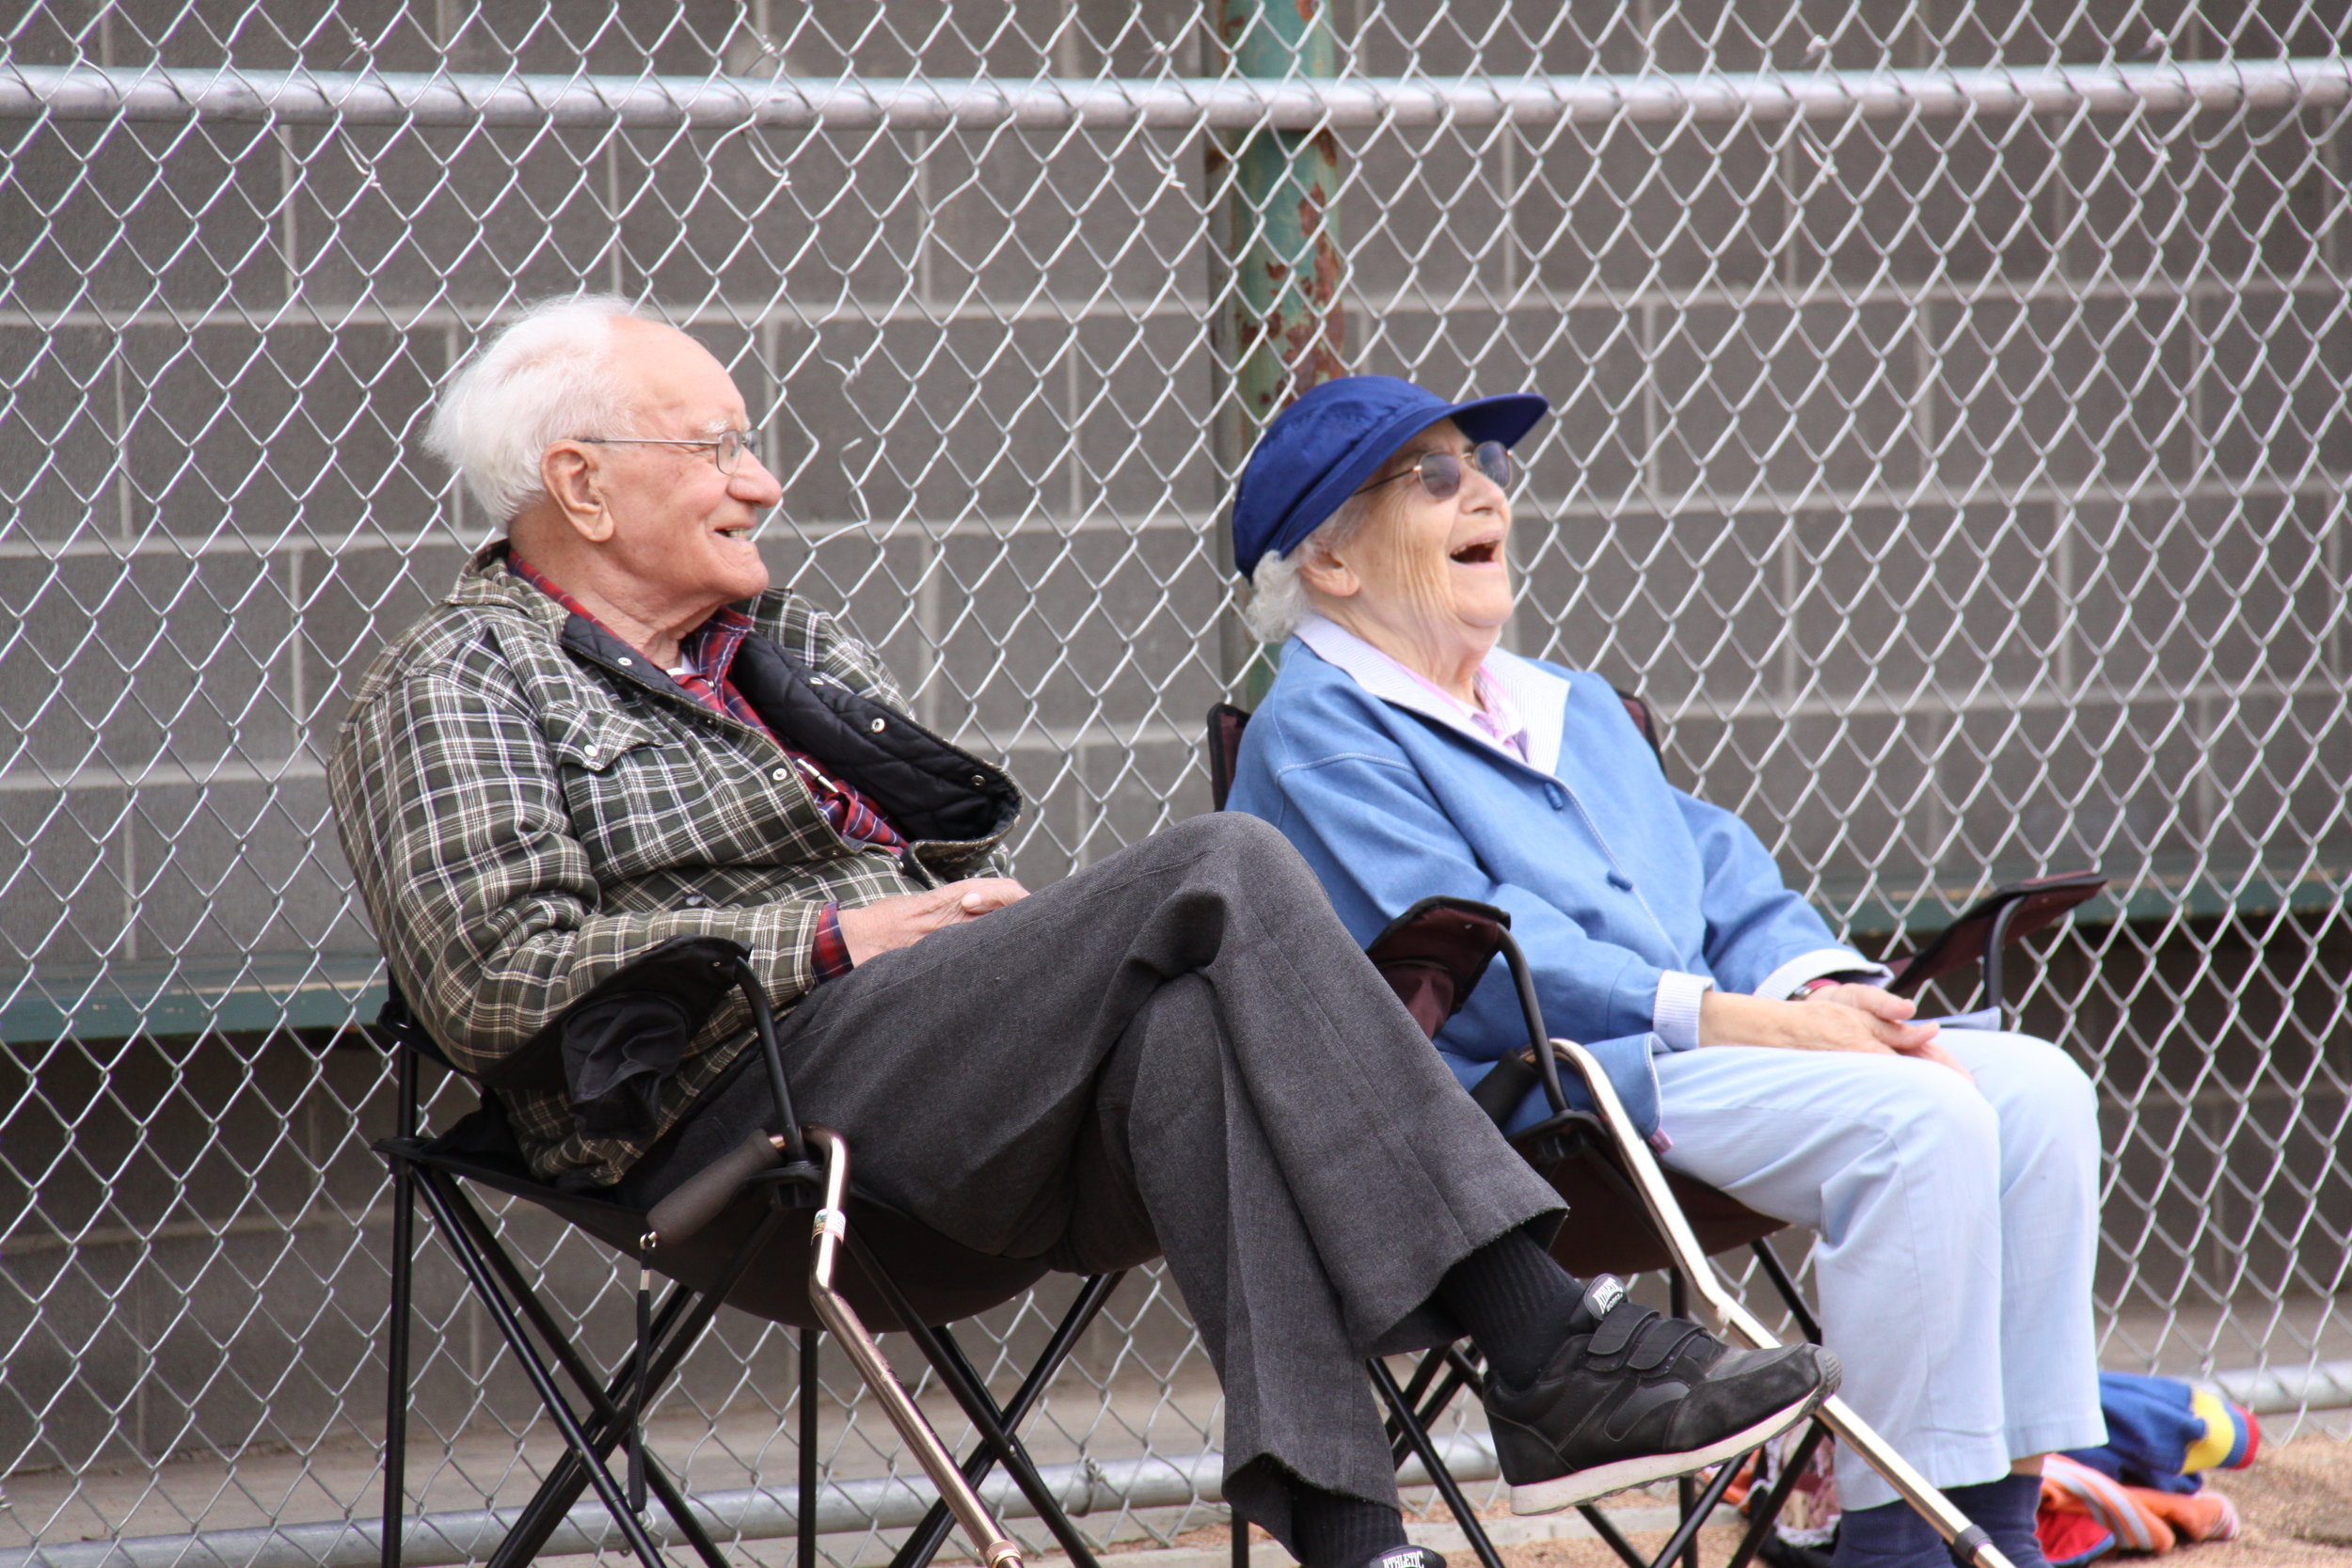 One of our favorite family memories, Grandpa & Grandma watching as the rest of us played a family baseball game.